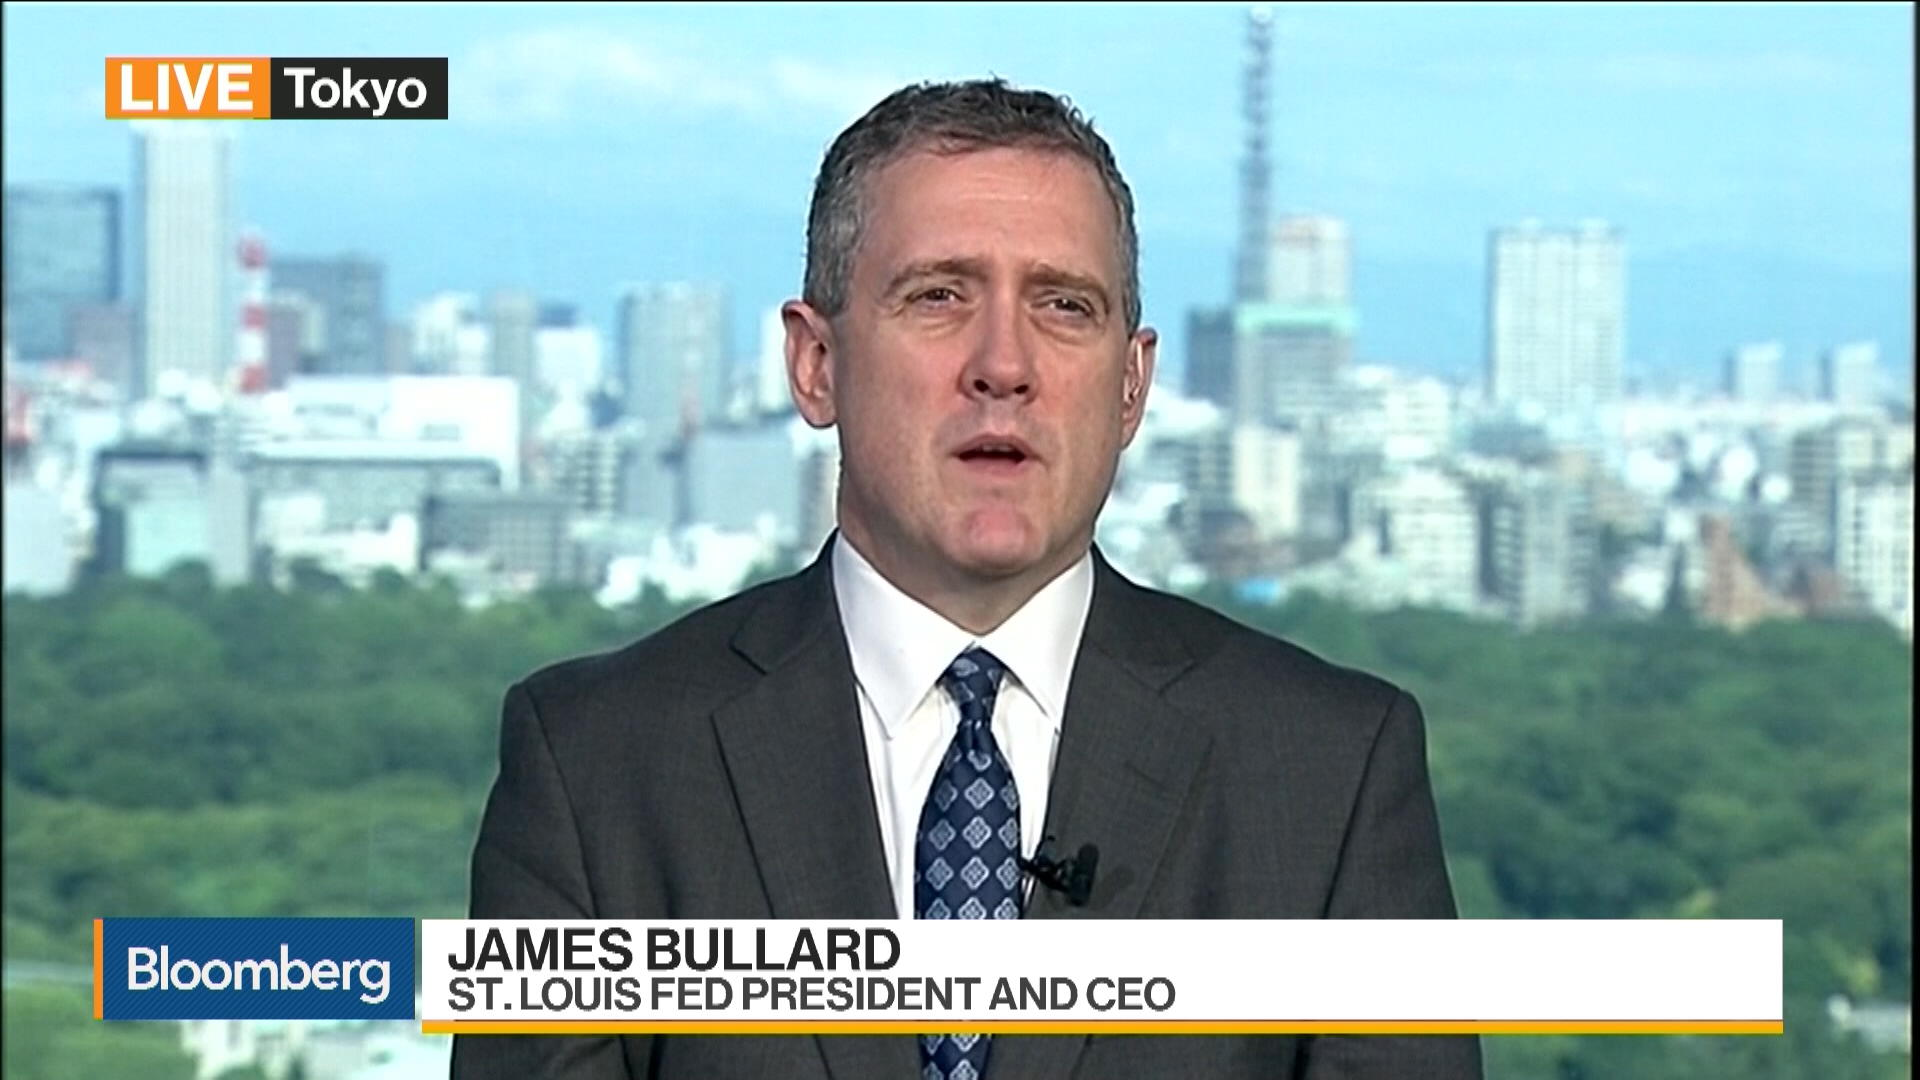 https://www bloomberg com/news/videos/2018-05-24/why-it-might-be